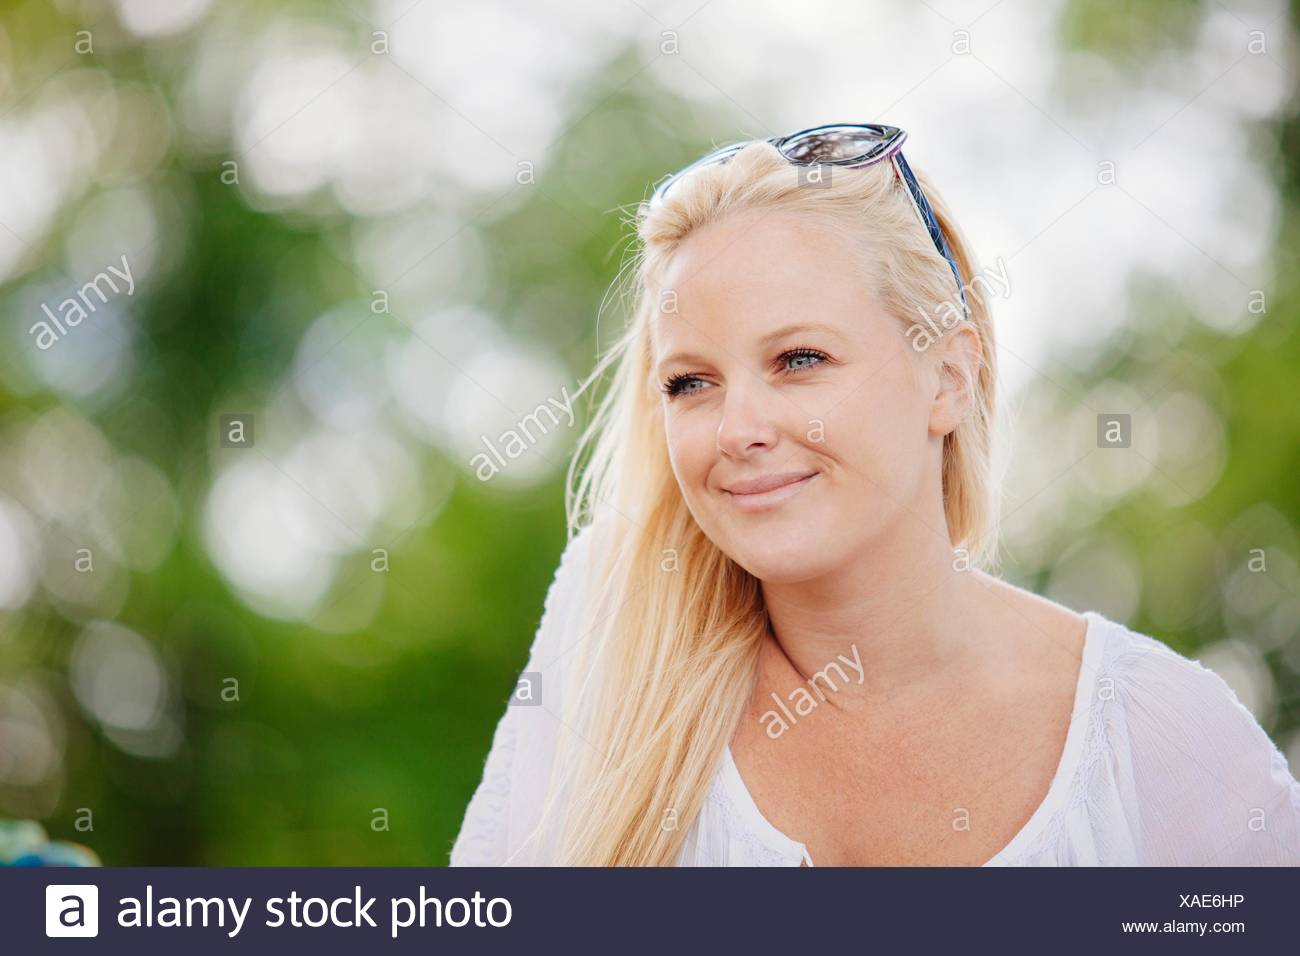 Portrait of long haired blonde young woman with sunglasses on head looking away smiling - Stock Image